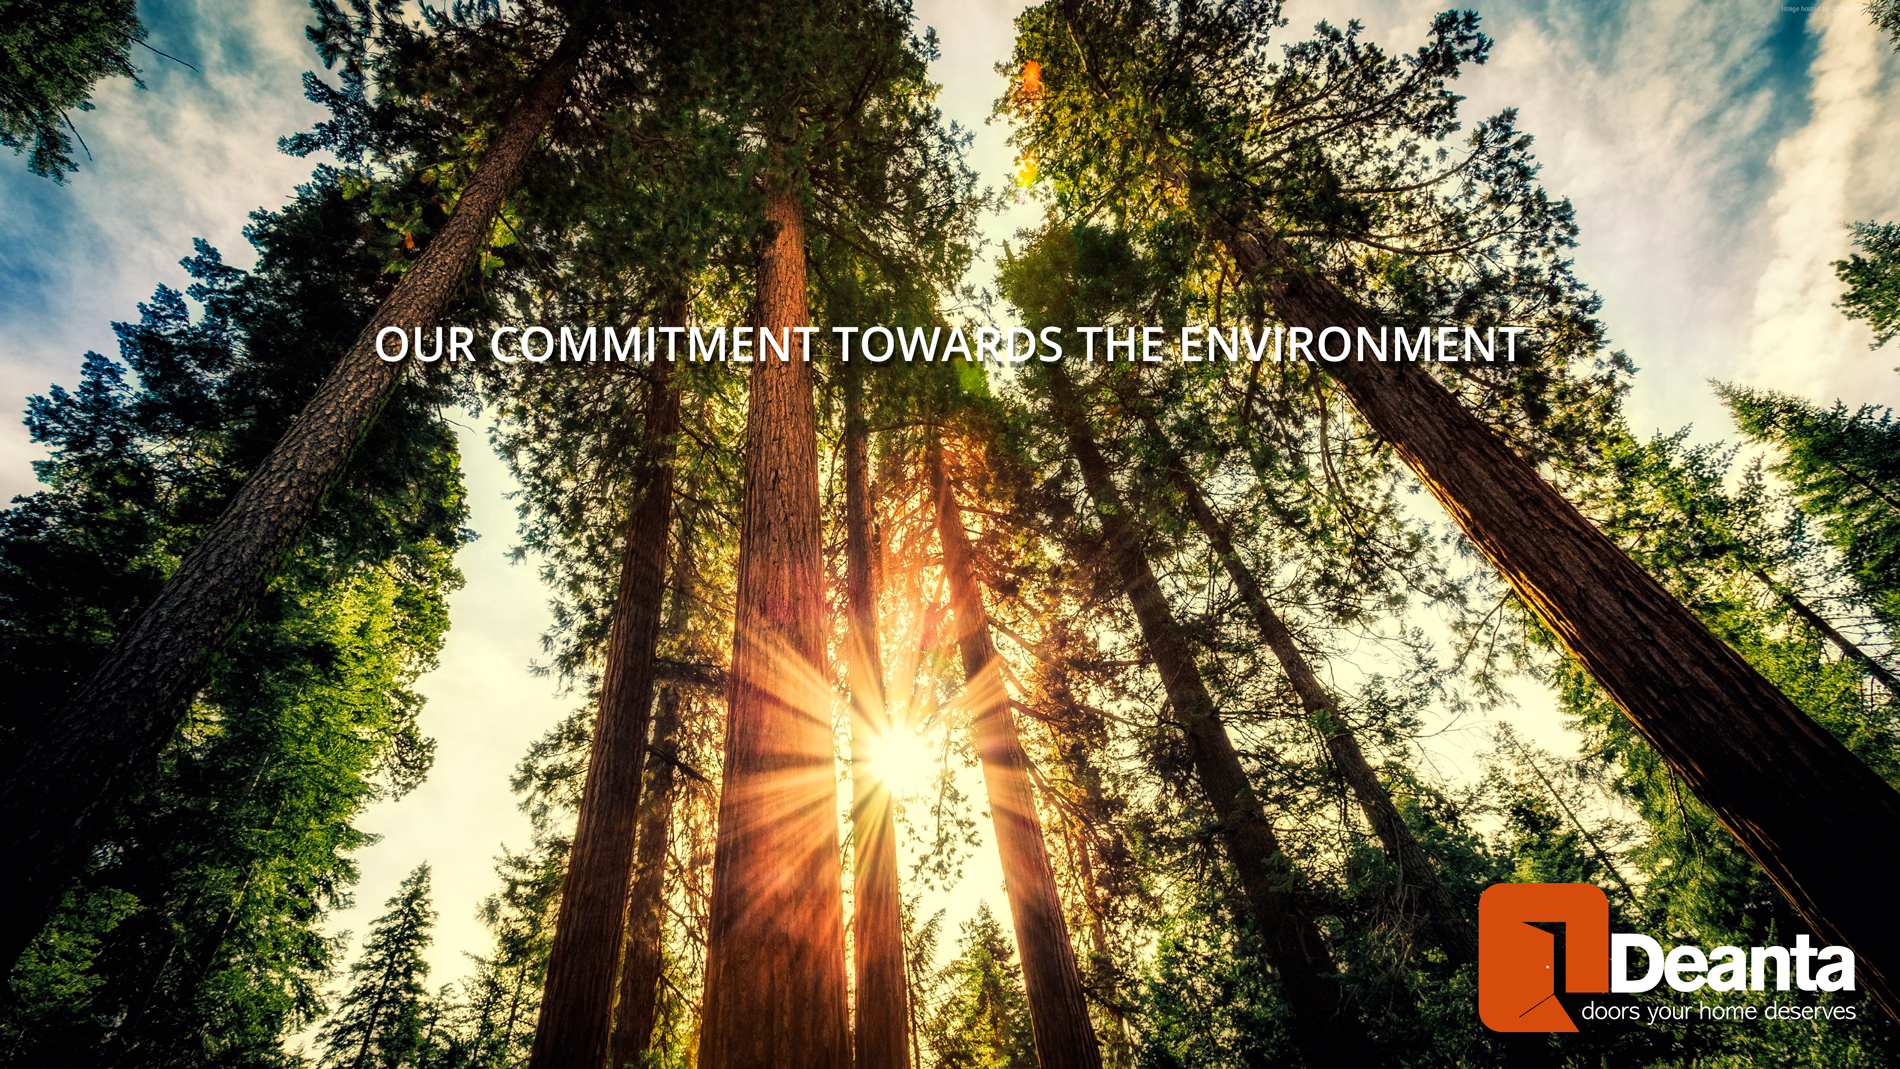 OUR COMMITMENT TOWARDS THE ENVIRONMENT